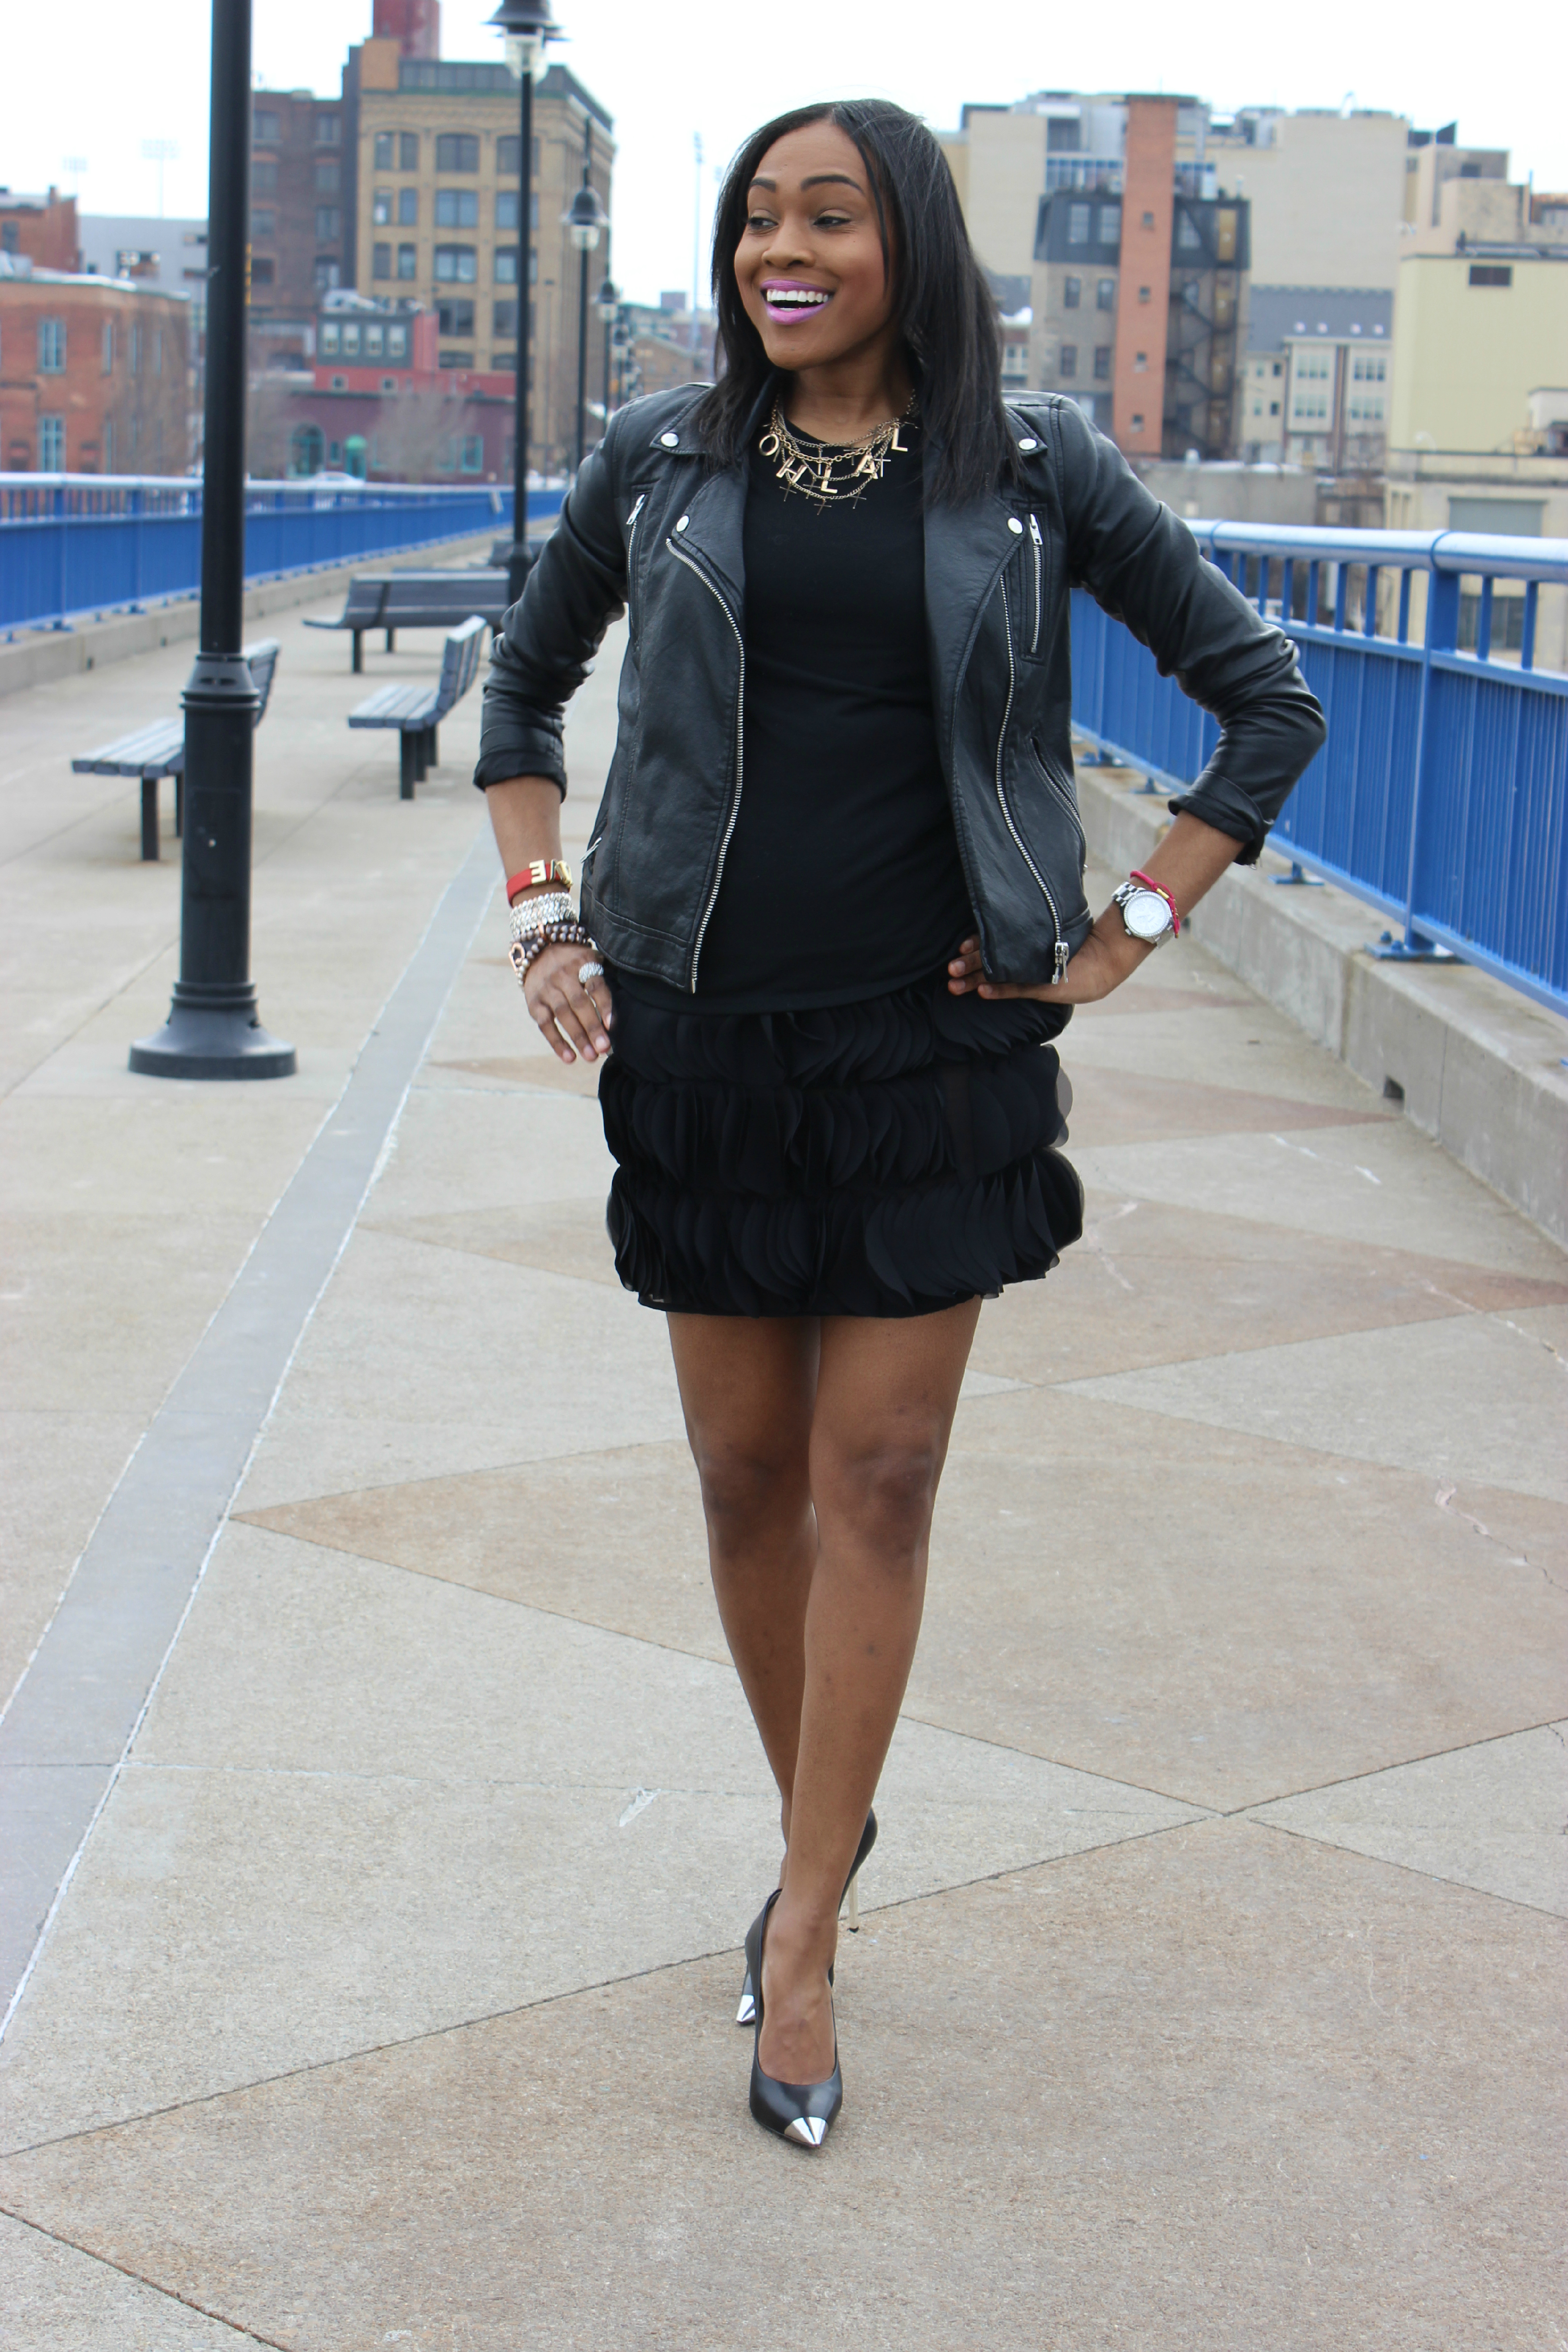 Style-files-Pretty-Price-Black -Moto-Jacket-Michael Kors-Silve-heel-PumPs-Thrifted-Skirt-Oohlalablog-18